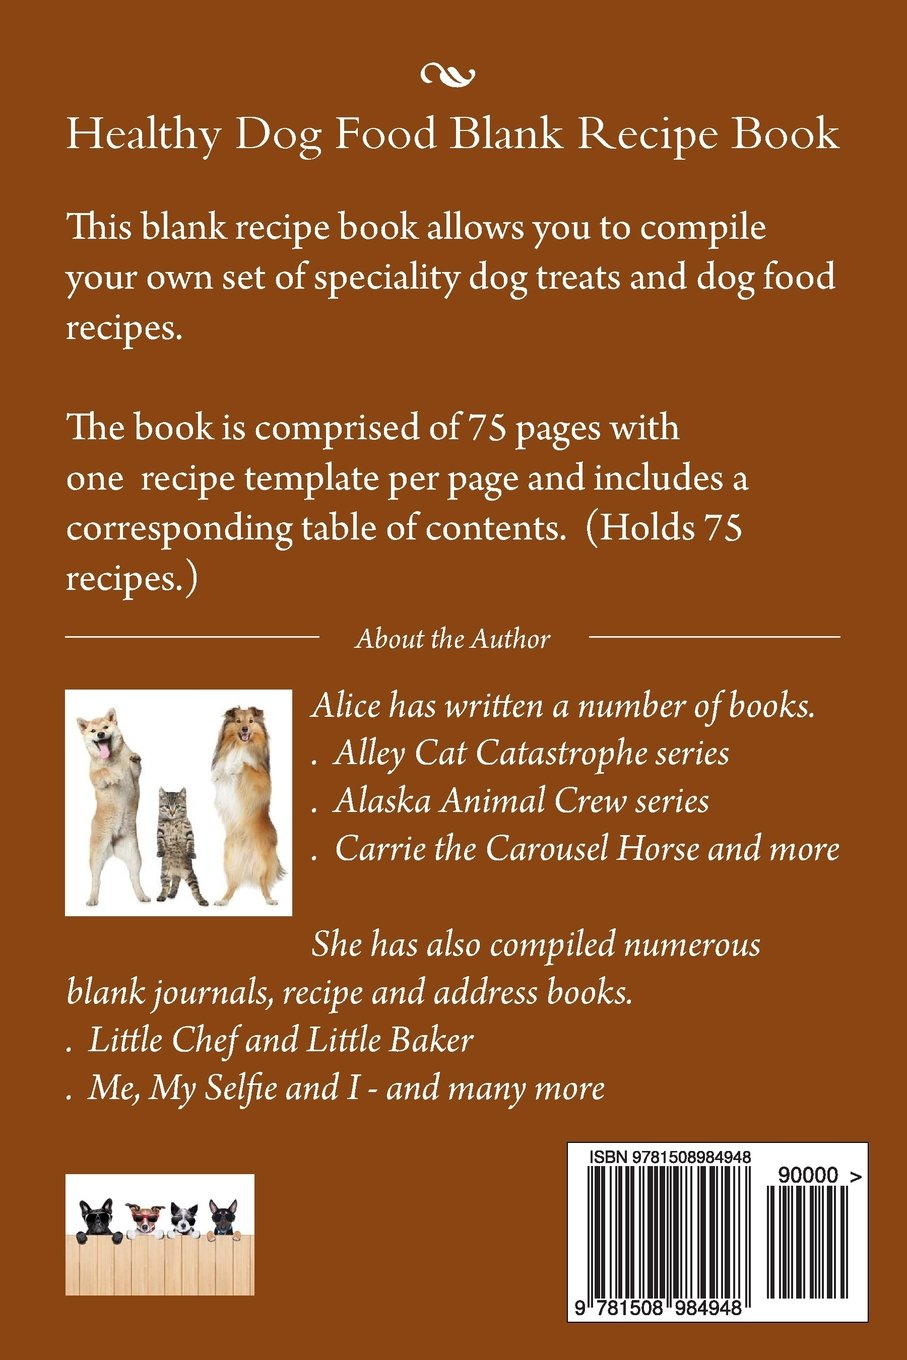 Healthy dog food blank recipe book raw baked natural biscuits or healthy dog food blank recipe book raw baked natural biscuits or treats recipe books mrs alice e tidwel 9781508984948 amazon books forumfinder Image collections